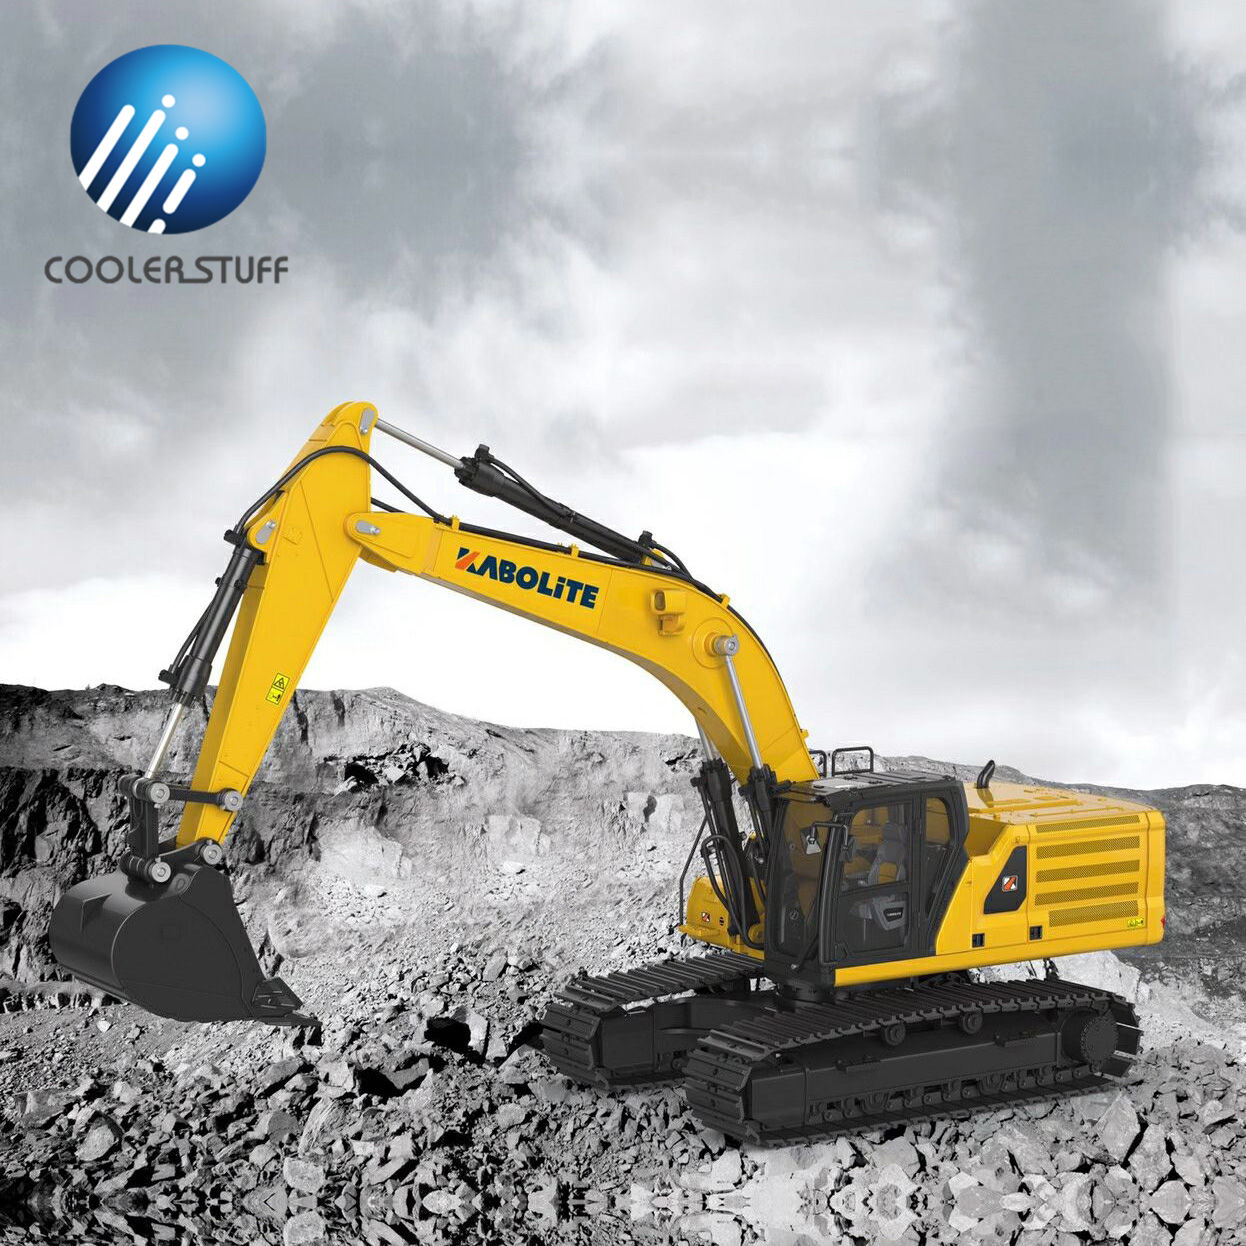 Huina 336 336GC KABOLITE K336 1:16 RC hydraulic excavator toy zinc alloy rc hobby construction truck digger machinery